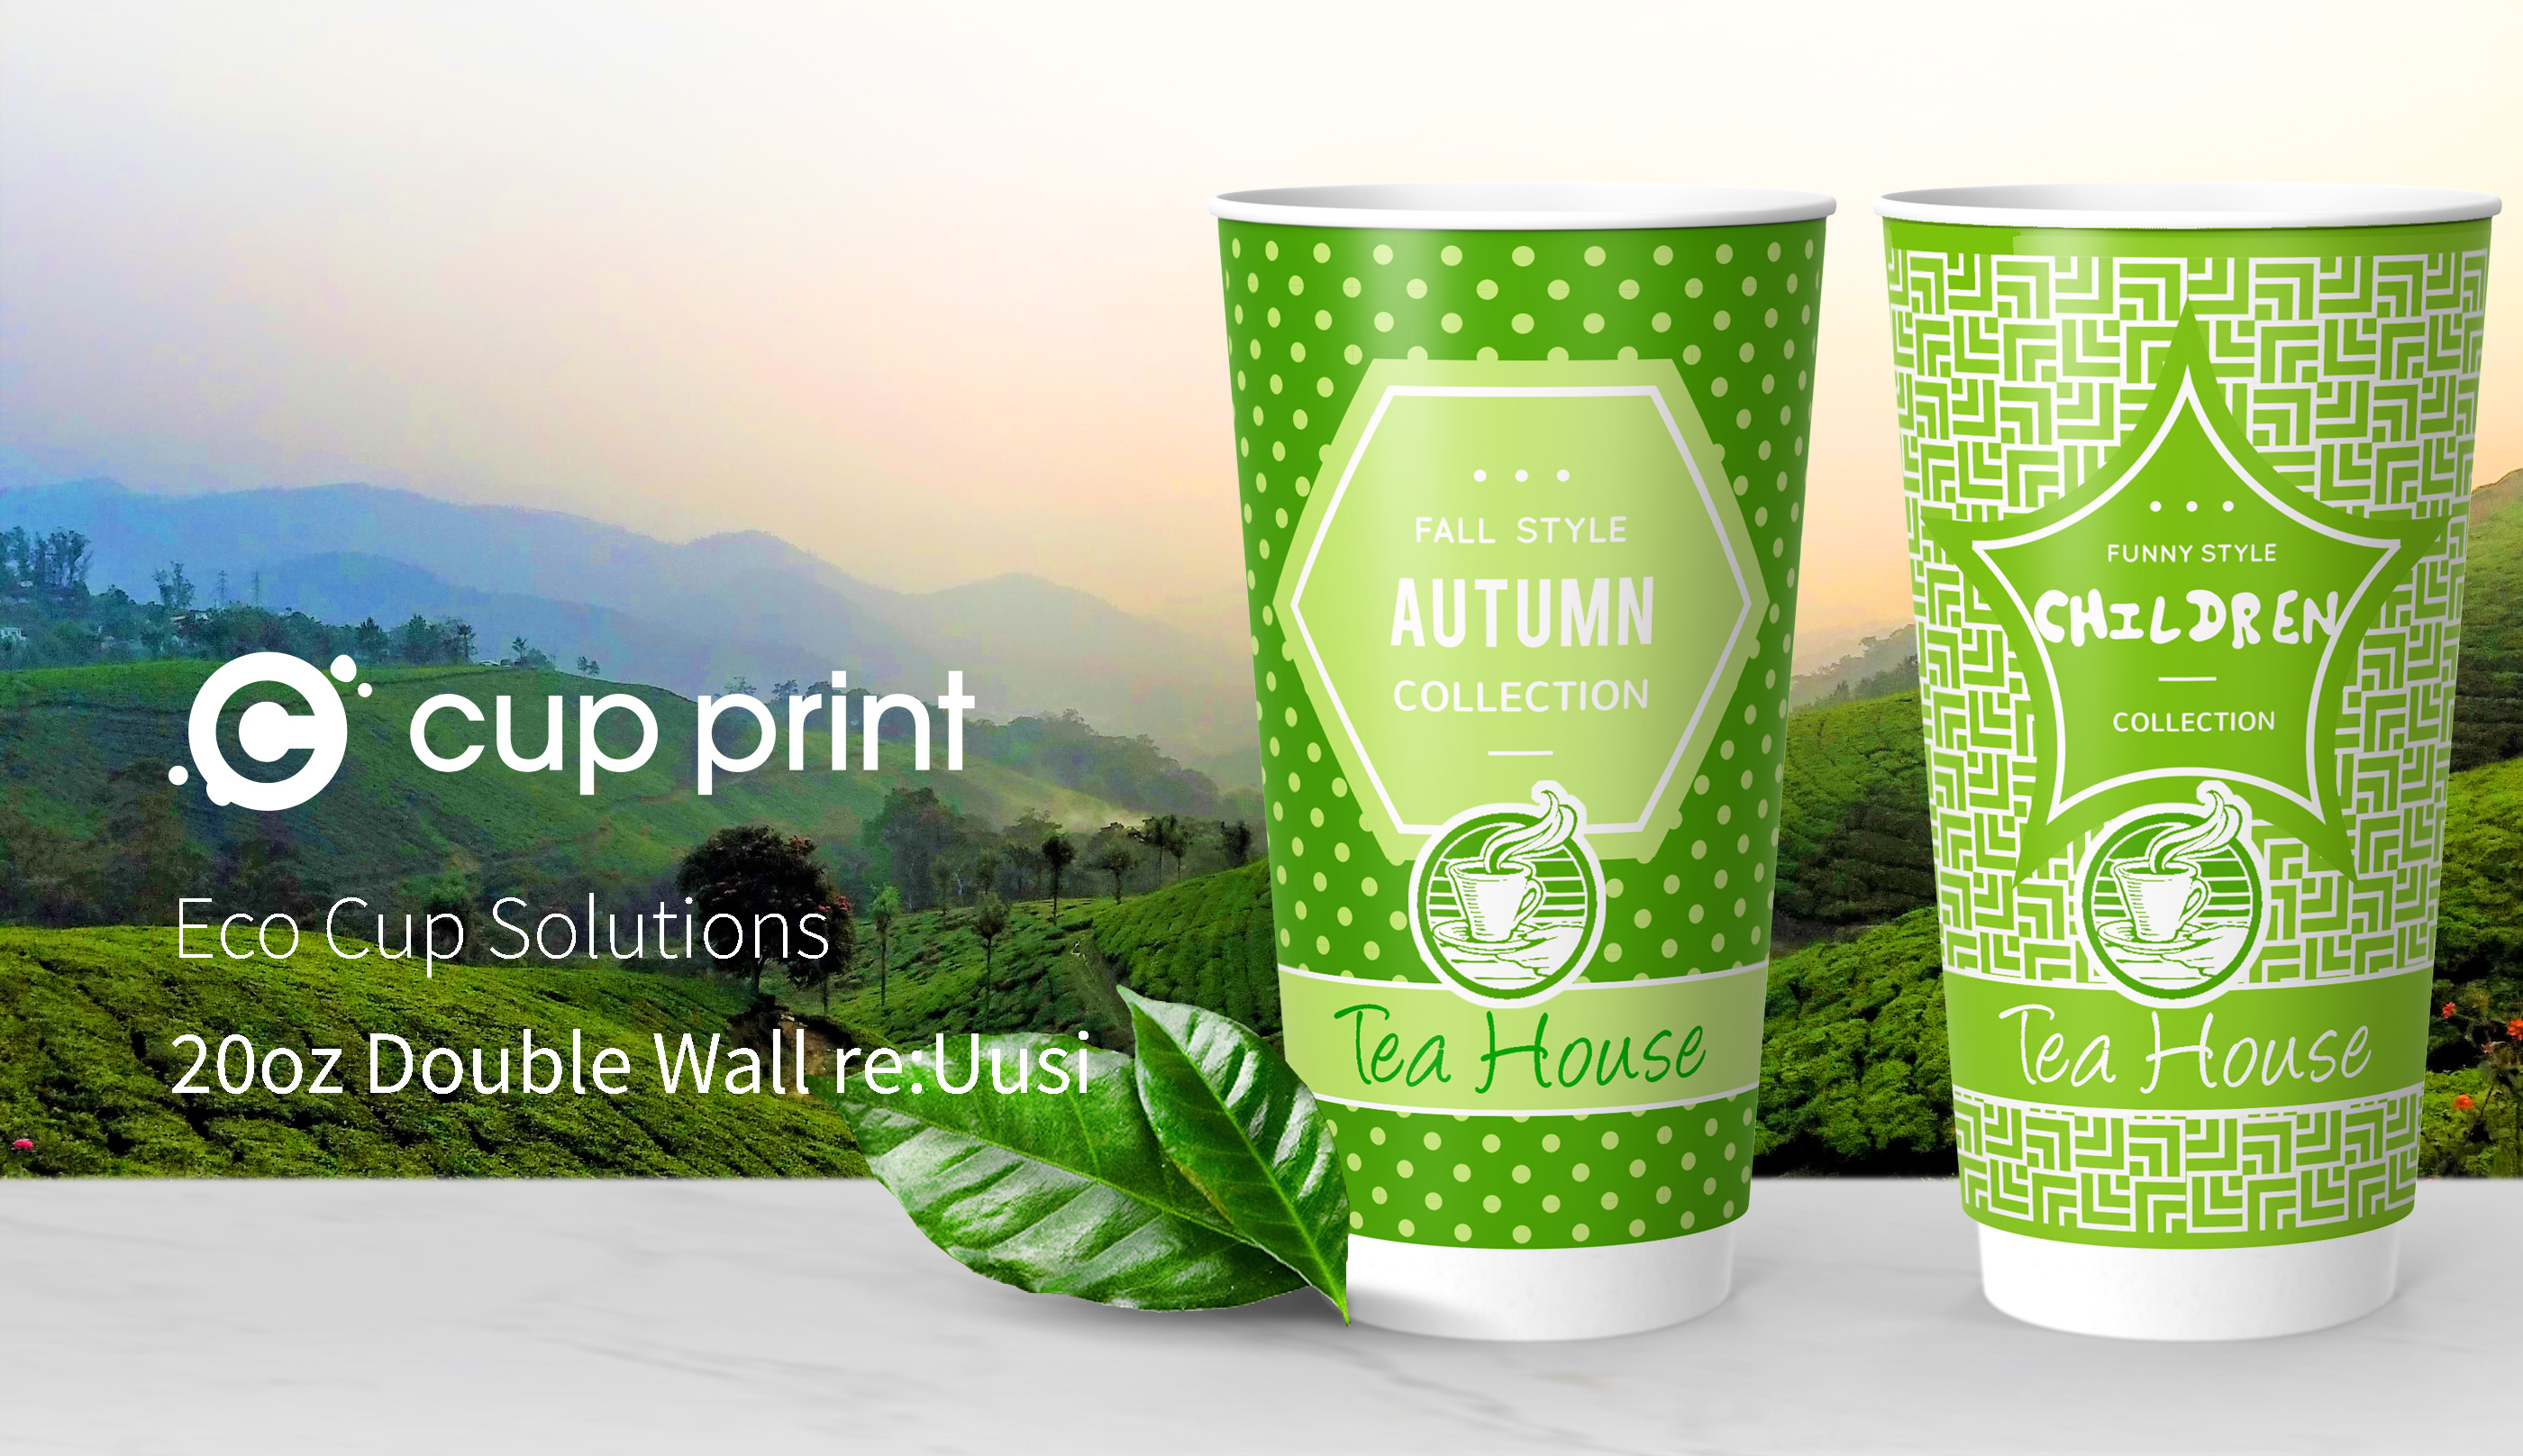 Cupprint reuusi Double Wall Cup 20oz